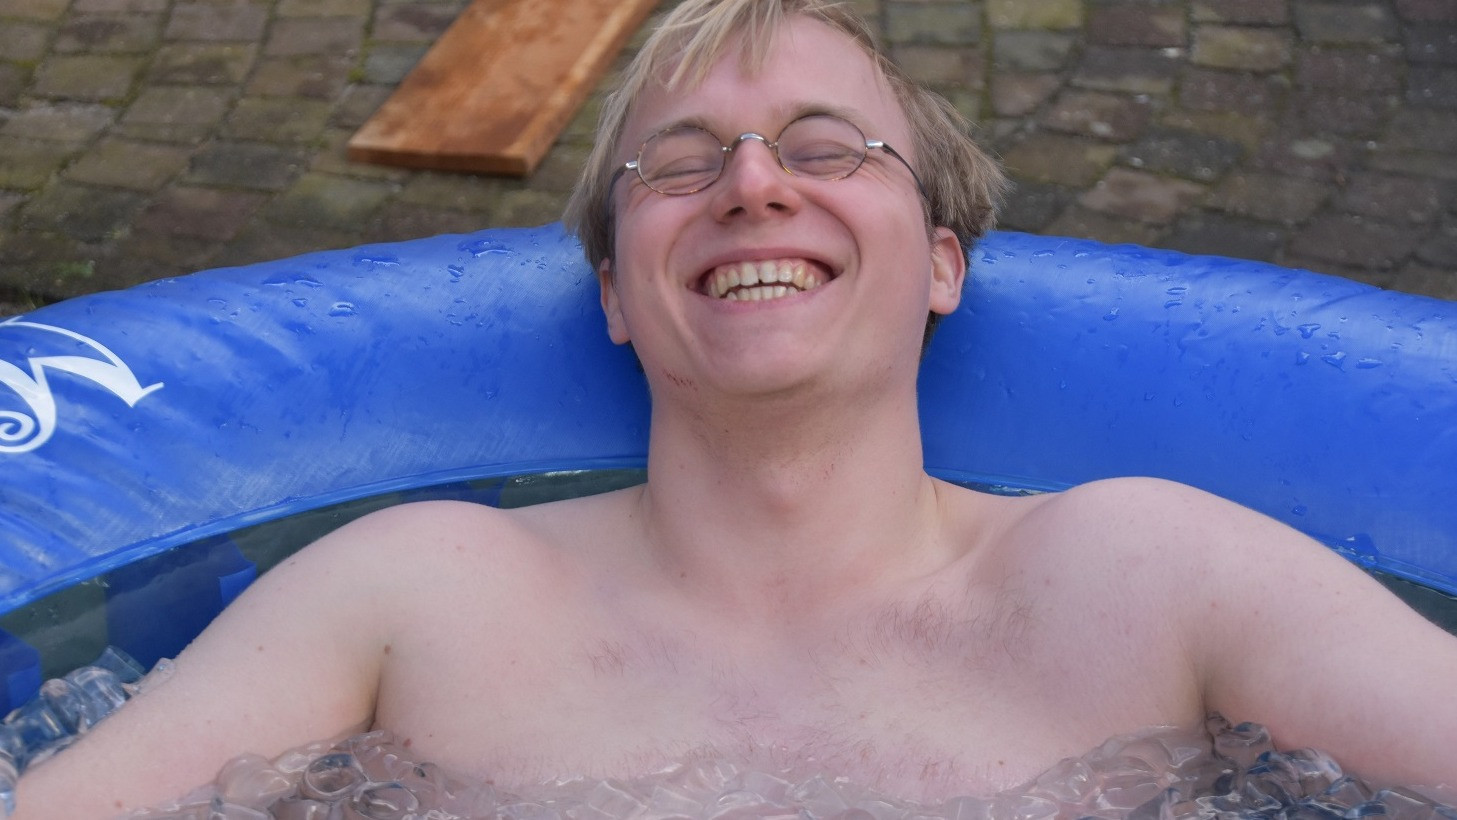 Image 15 of 15 - Experience the Wim Hof Method to get an impression of  at